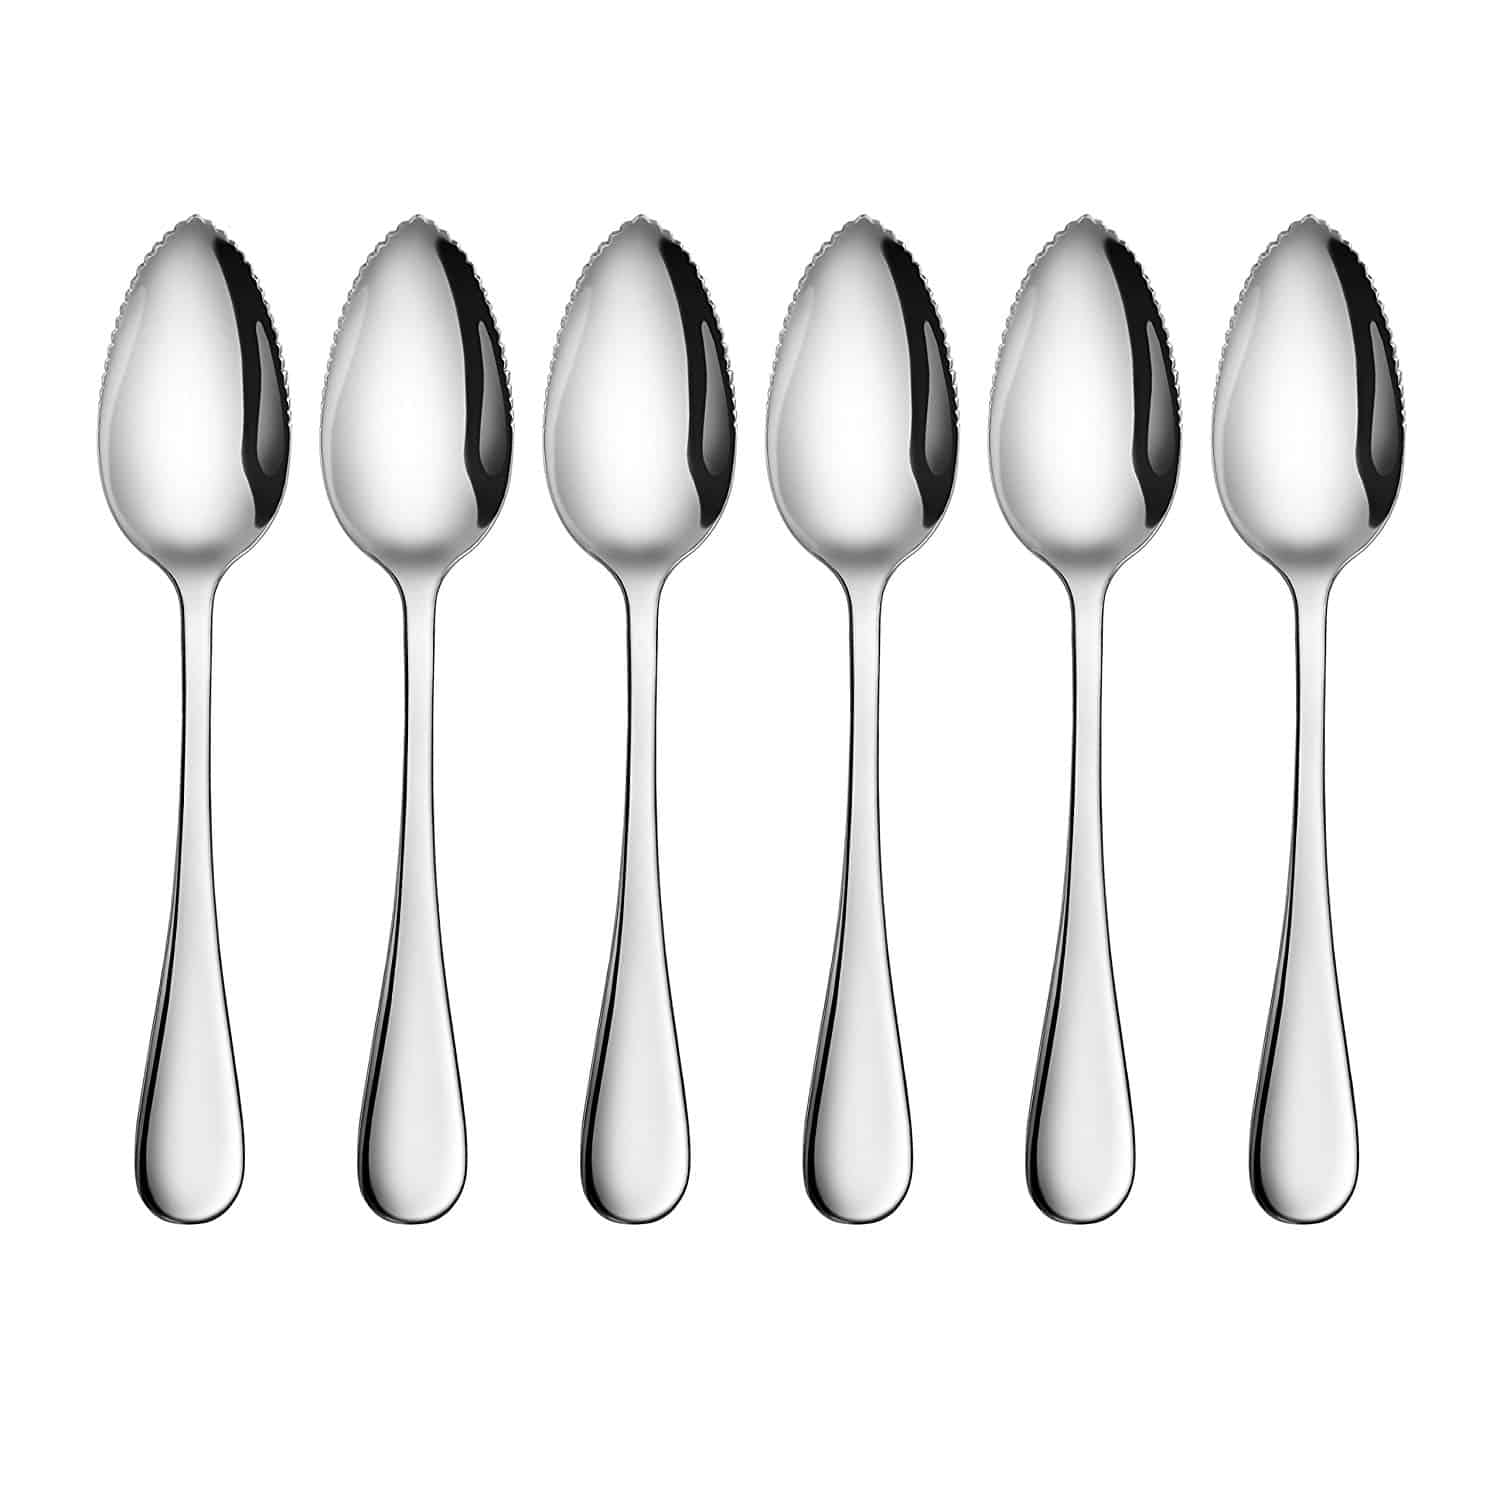 19 Different Types Of Silverware